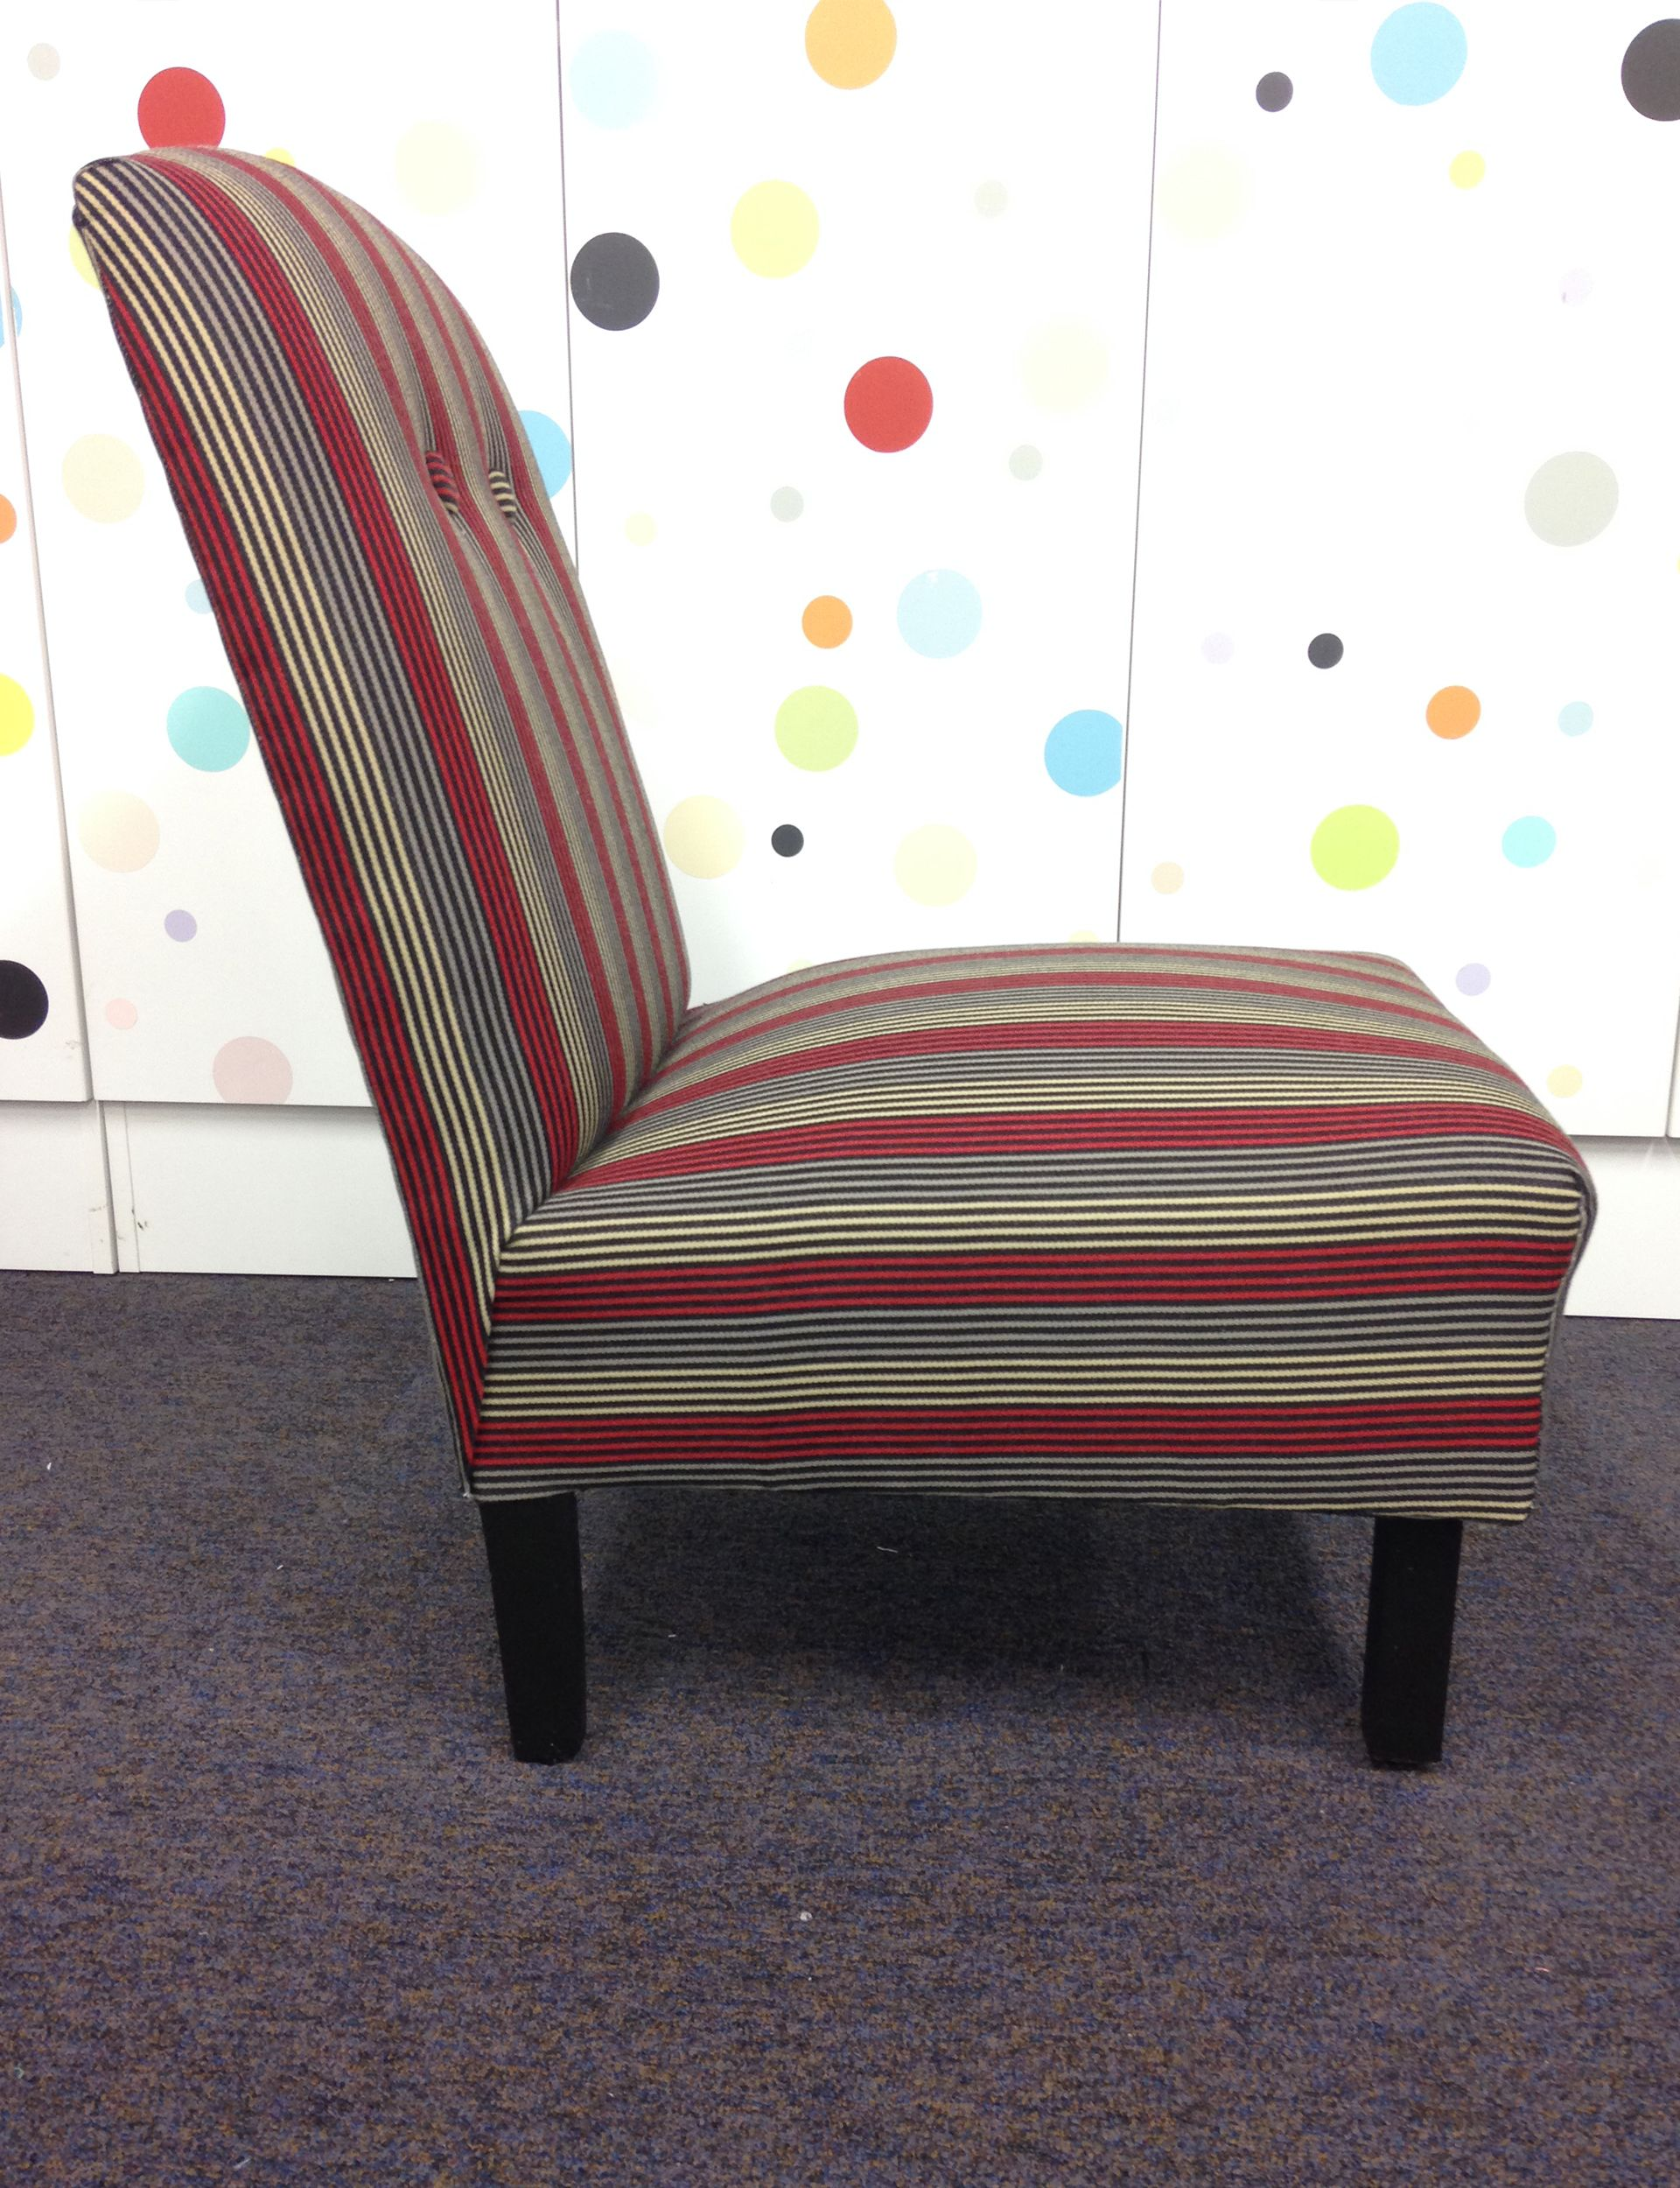 Your Step-by-step Guide To Reupholstering An Armless Chair